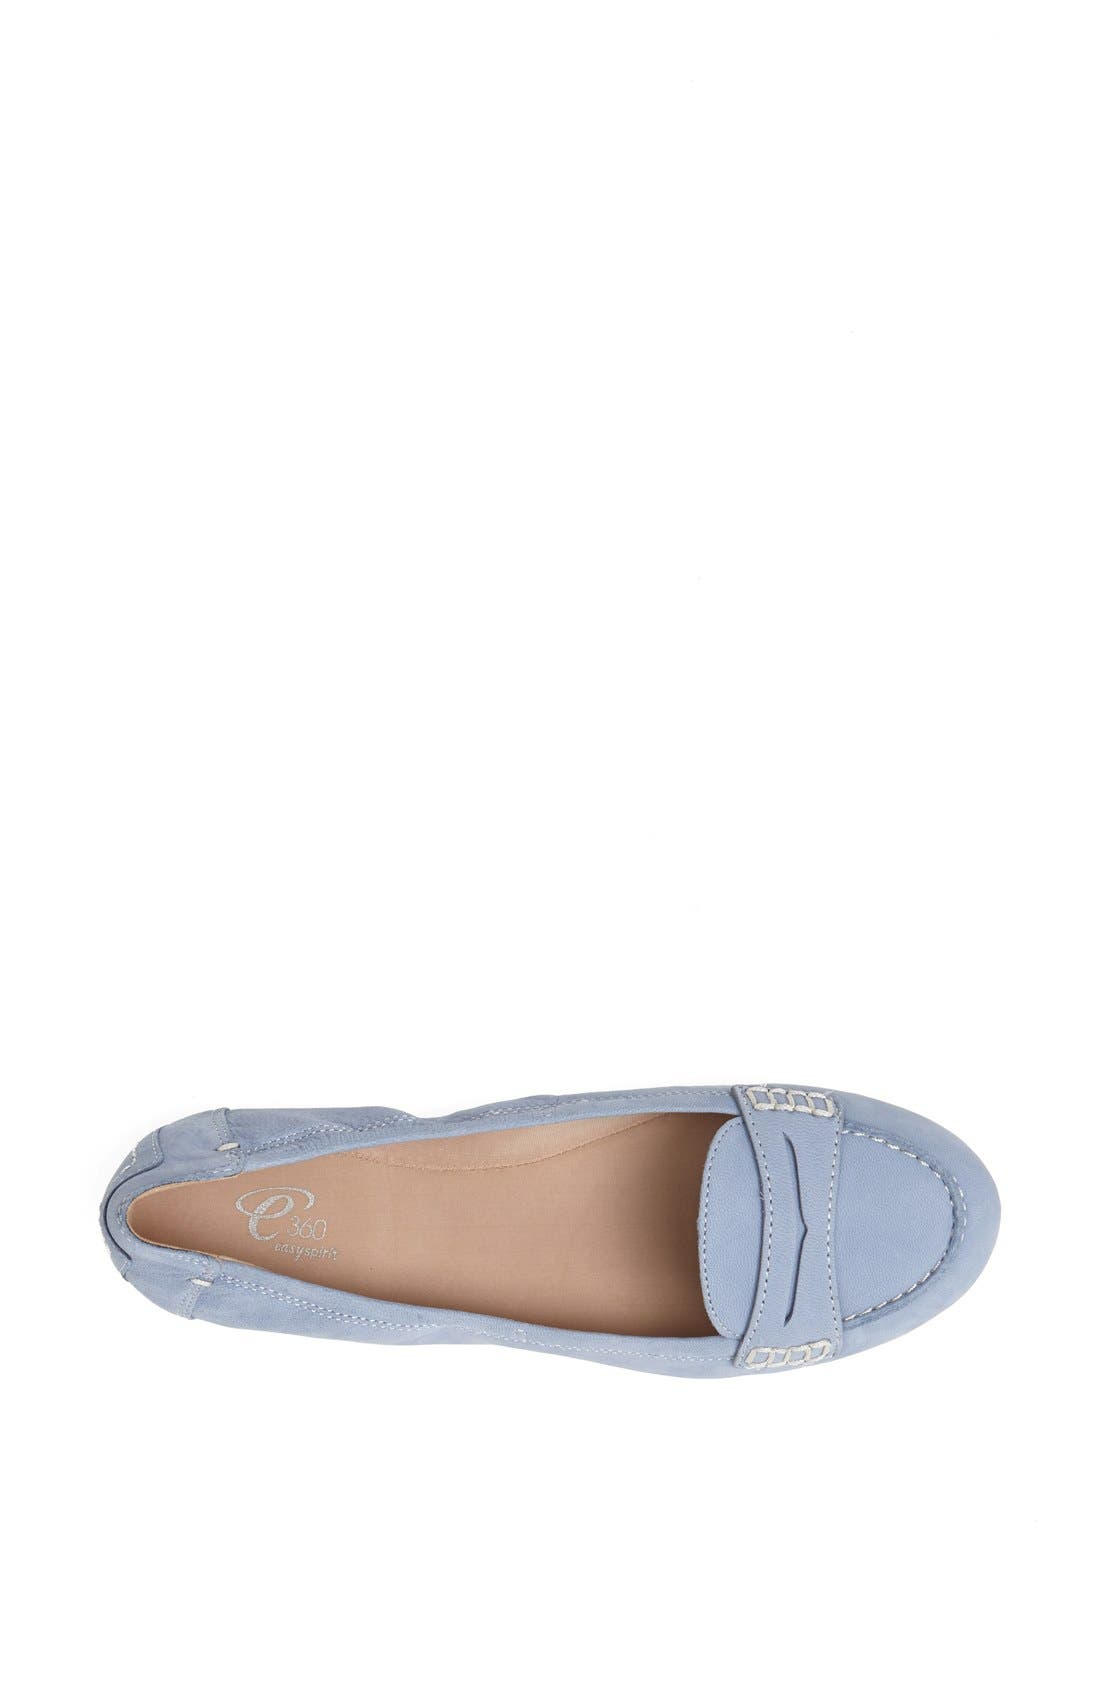 Alternate Image 3  - Easy Spirit 'e360 - Grotto' Leather Penny Loafer (Women)